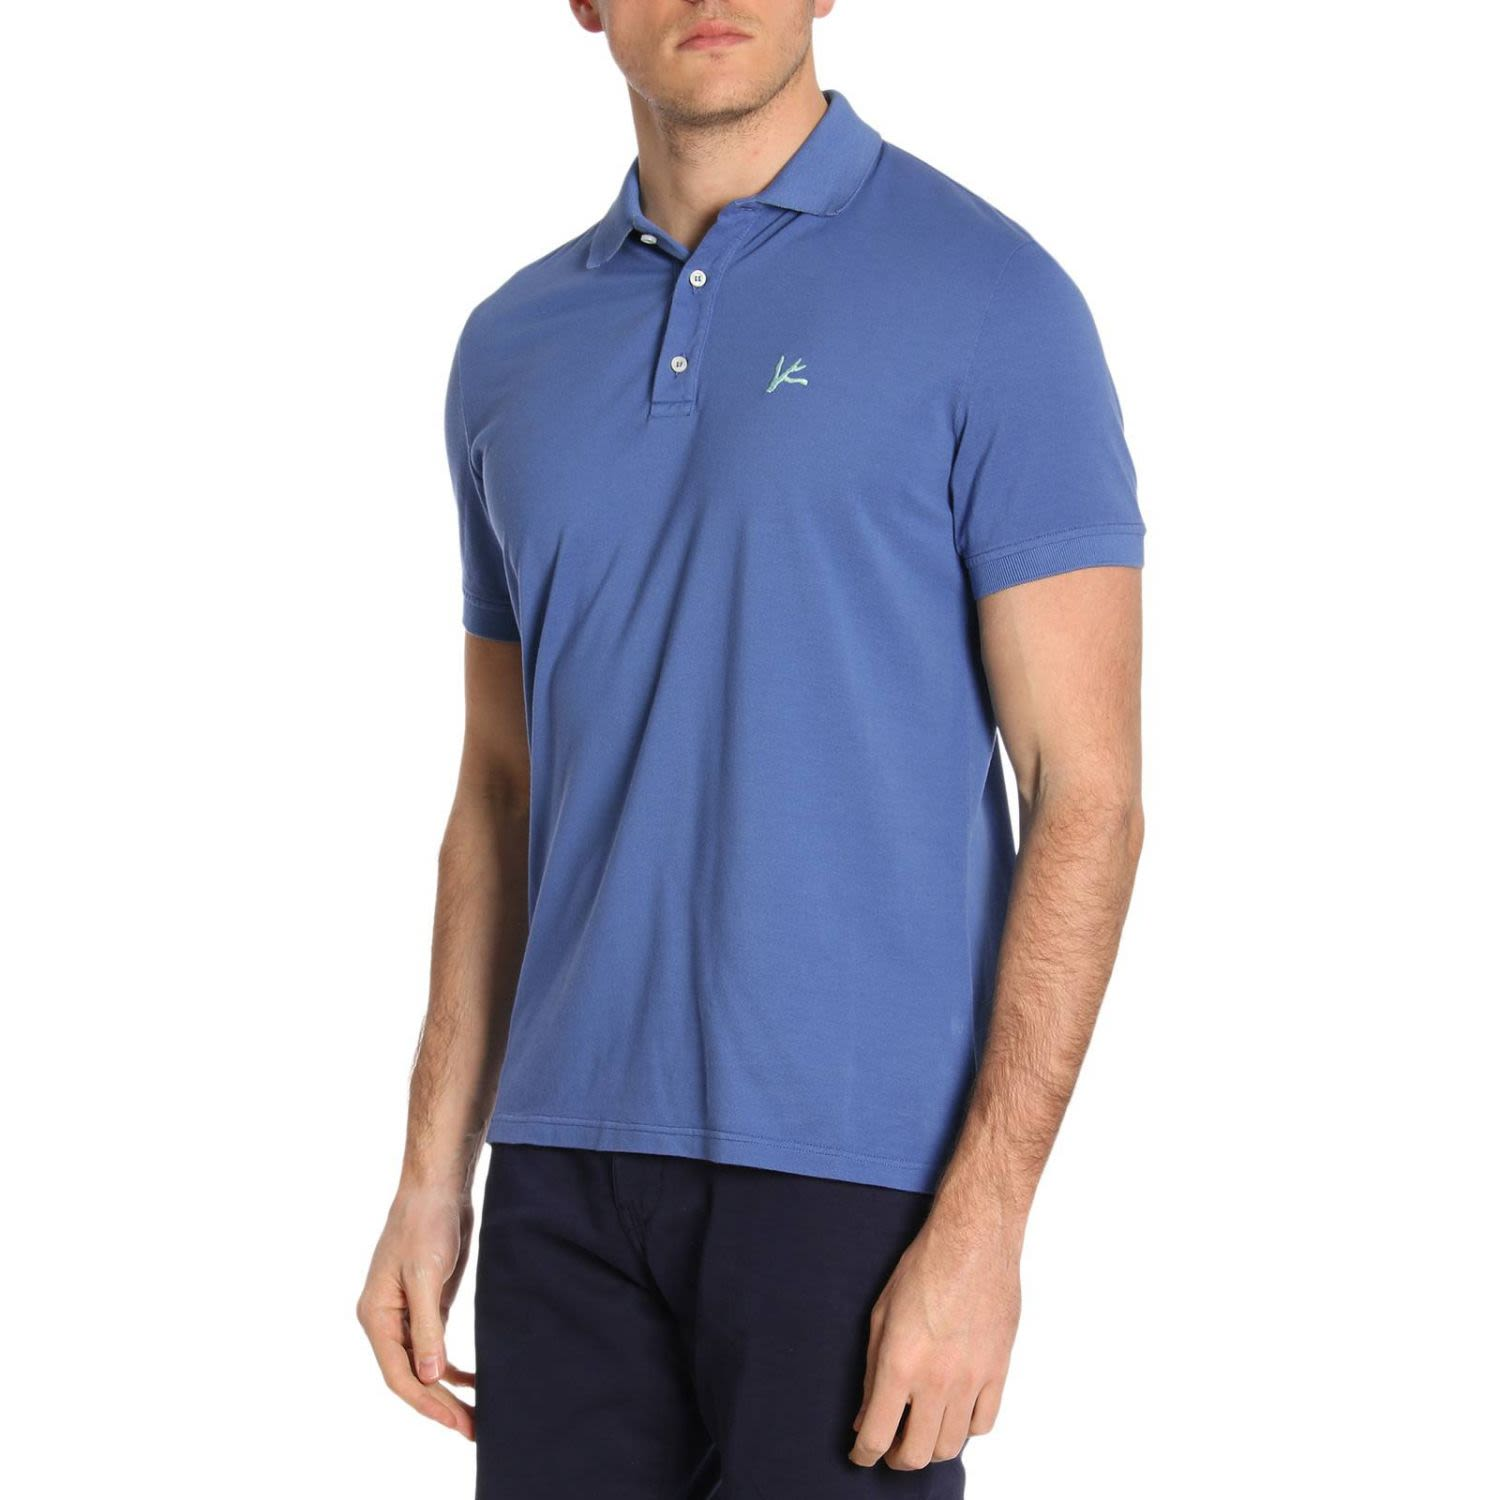 TOPWEAR - Polo shirts Isaia Cheap Online Shop Sale Get Authentic Free Shipping Top Quality Explore Sale Online mmXyPeHWrC